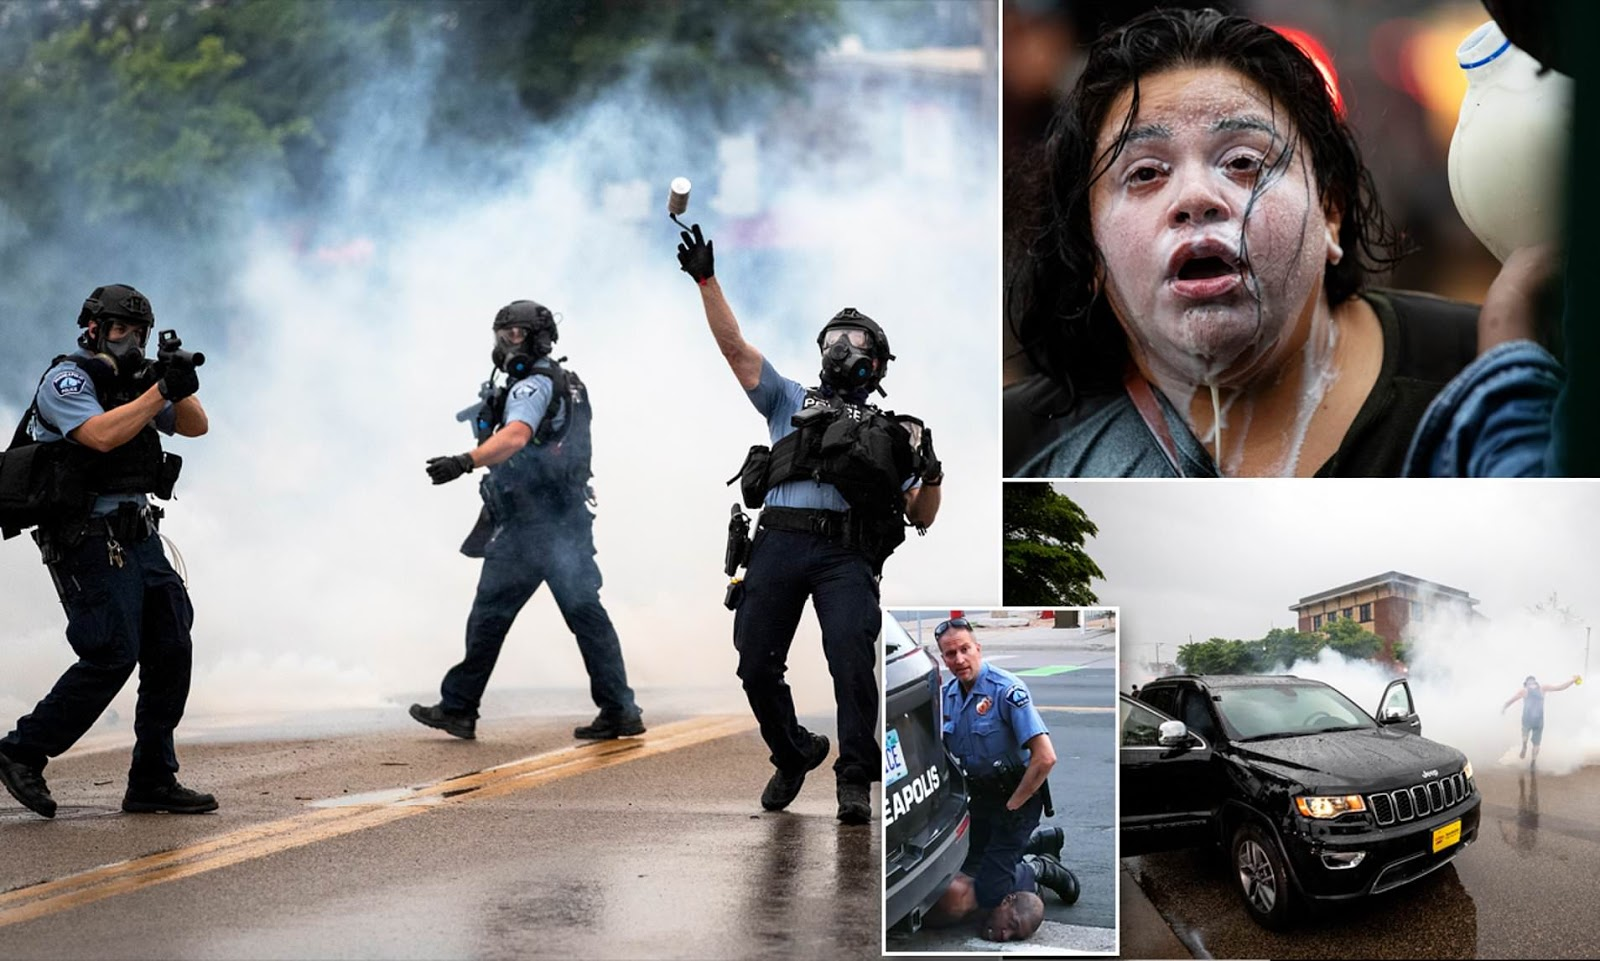 Police in riot gear fire rubber bullets and tear gas at thousands of protestors demanding the arrest of four white Minneapolis cops involved in the death of black man George Floyd